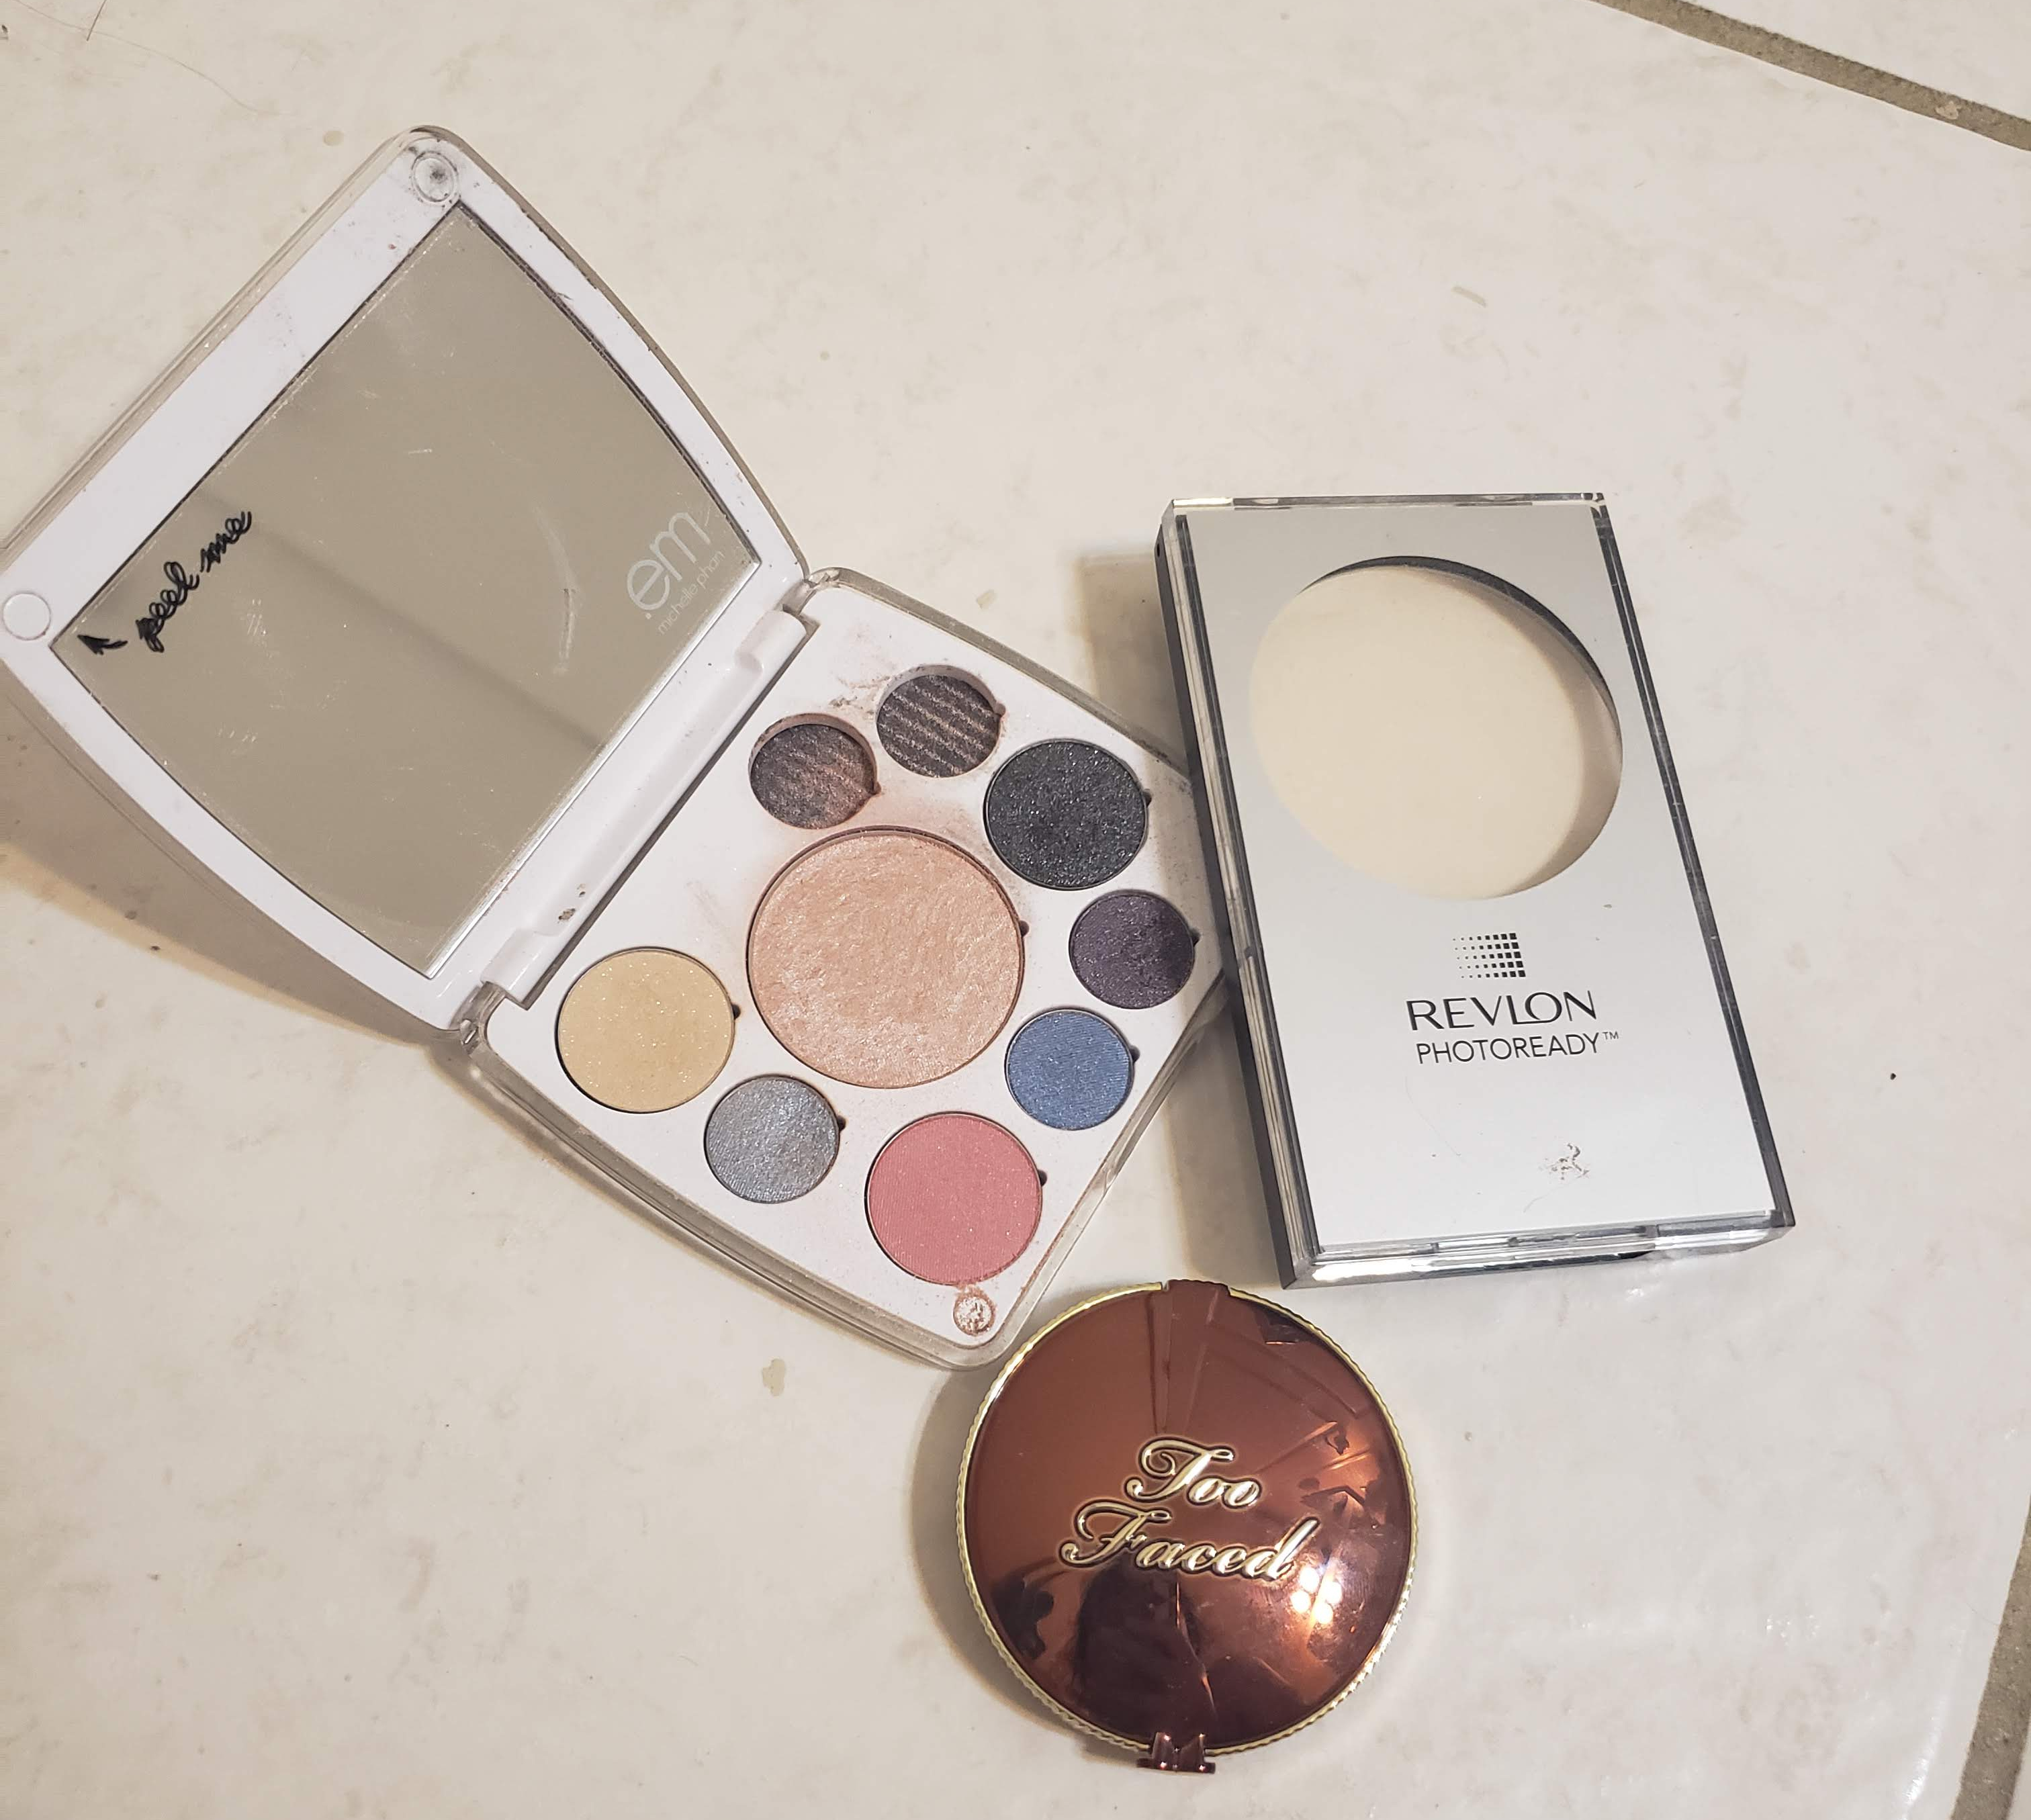 Pictured: A compact by EM Cosmetics, Revlon PhotoReady Translucent Finisher, and Too Faced Chocolate Soleil Bronzer.